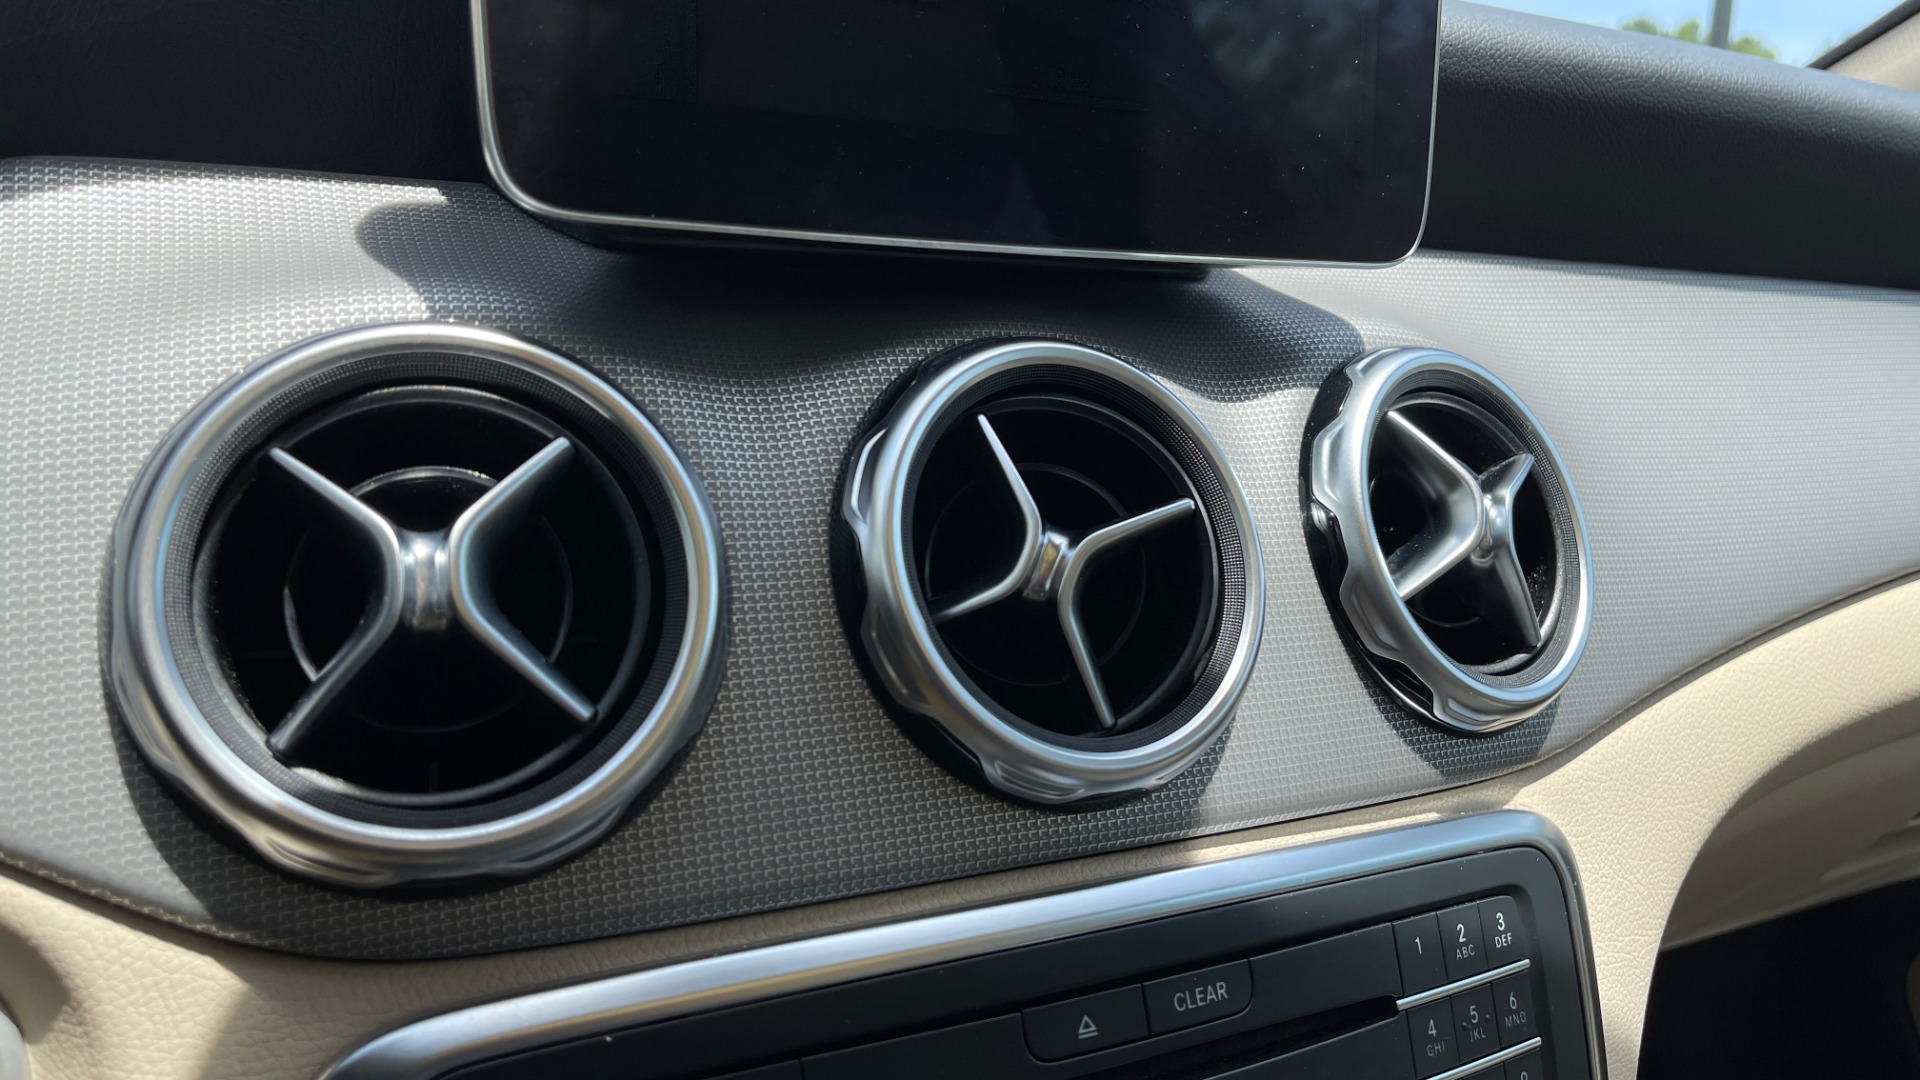 Used 2018 Mercedes-Benz GLA 250 4MATIC SUV / PANO-ROOF / HTD STS / BLIND SPOT ASST / APPLE for sale $31,995 at Formula Imports in Charlotte NC 28227 44